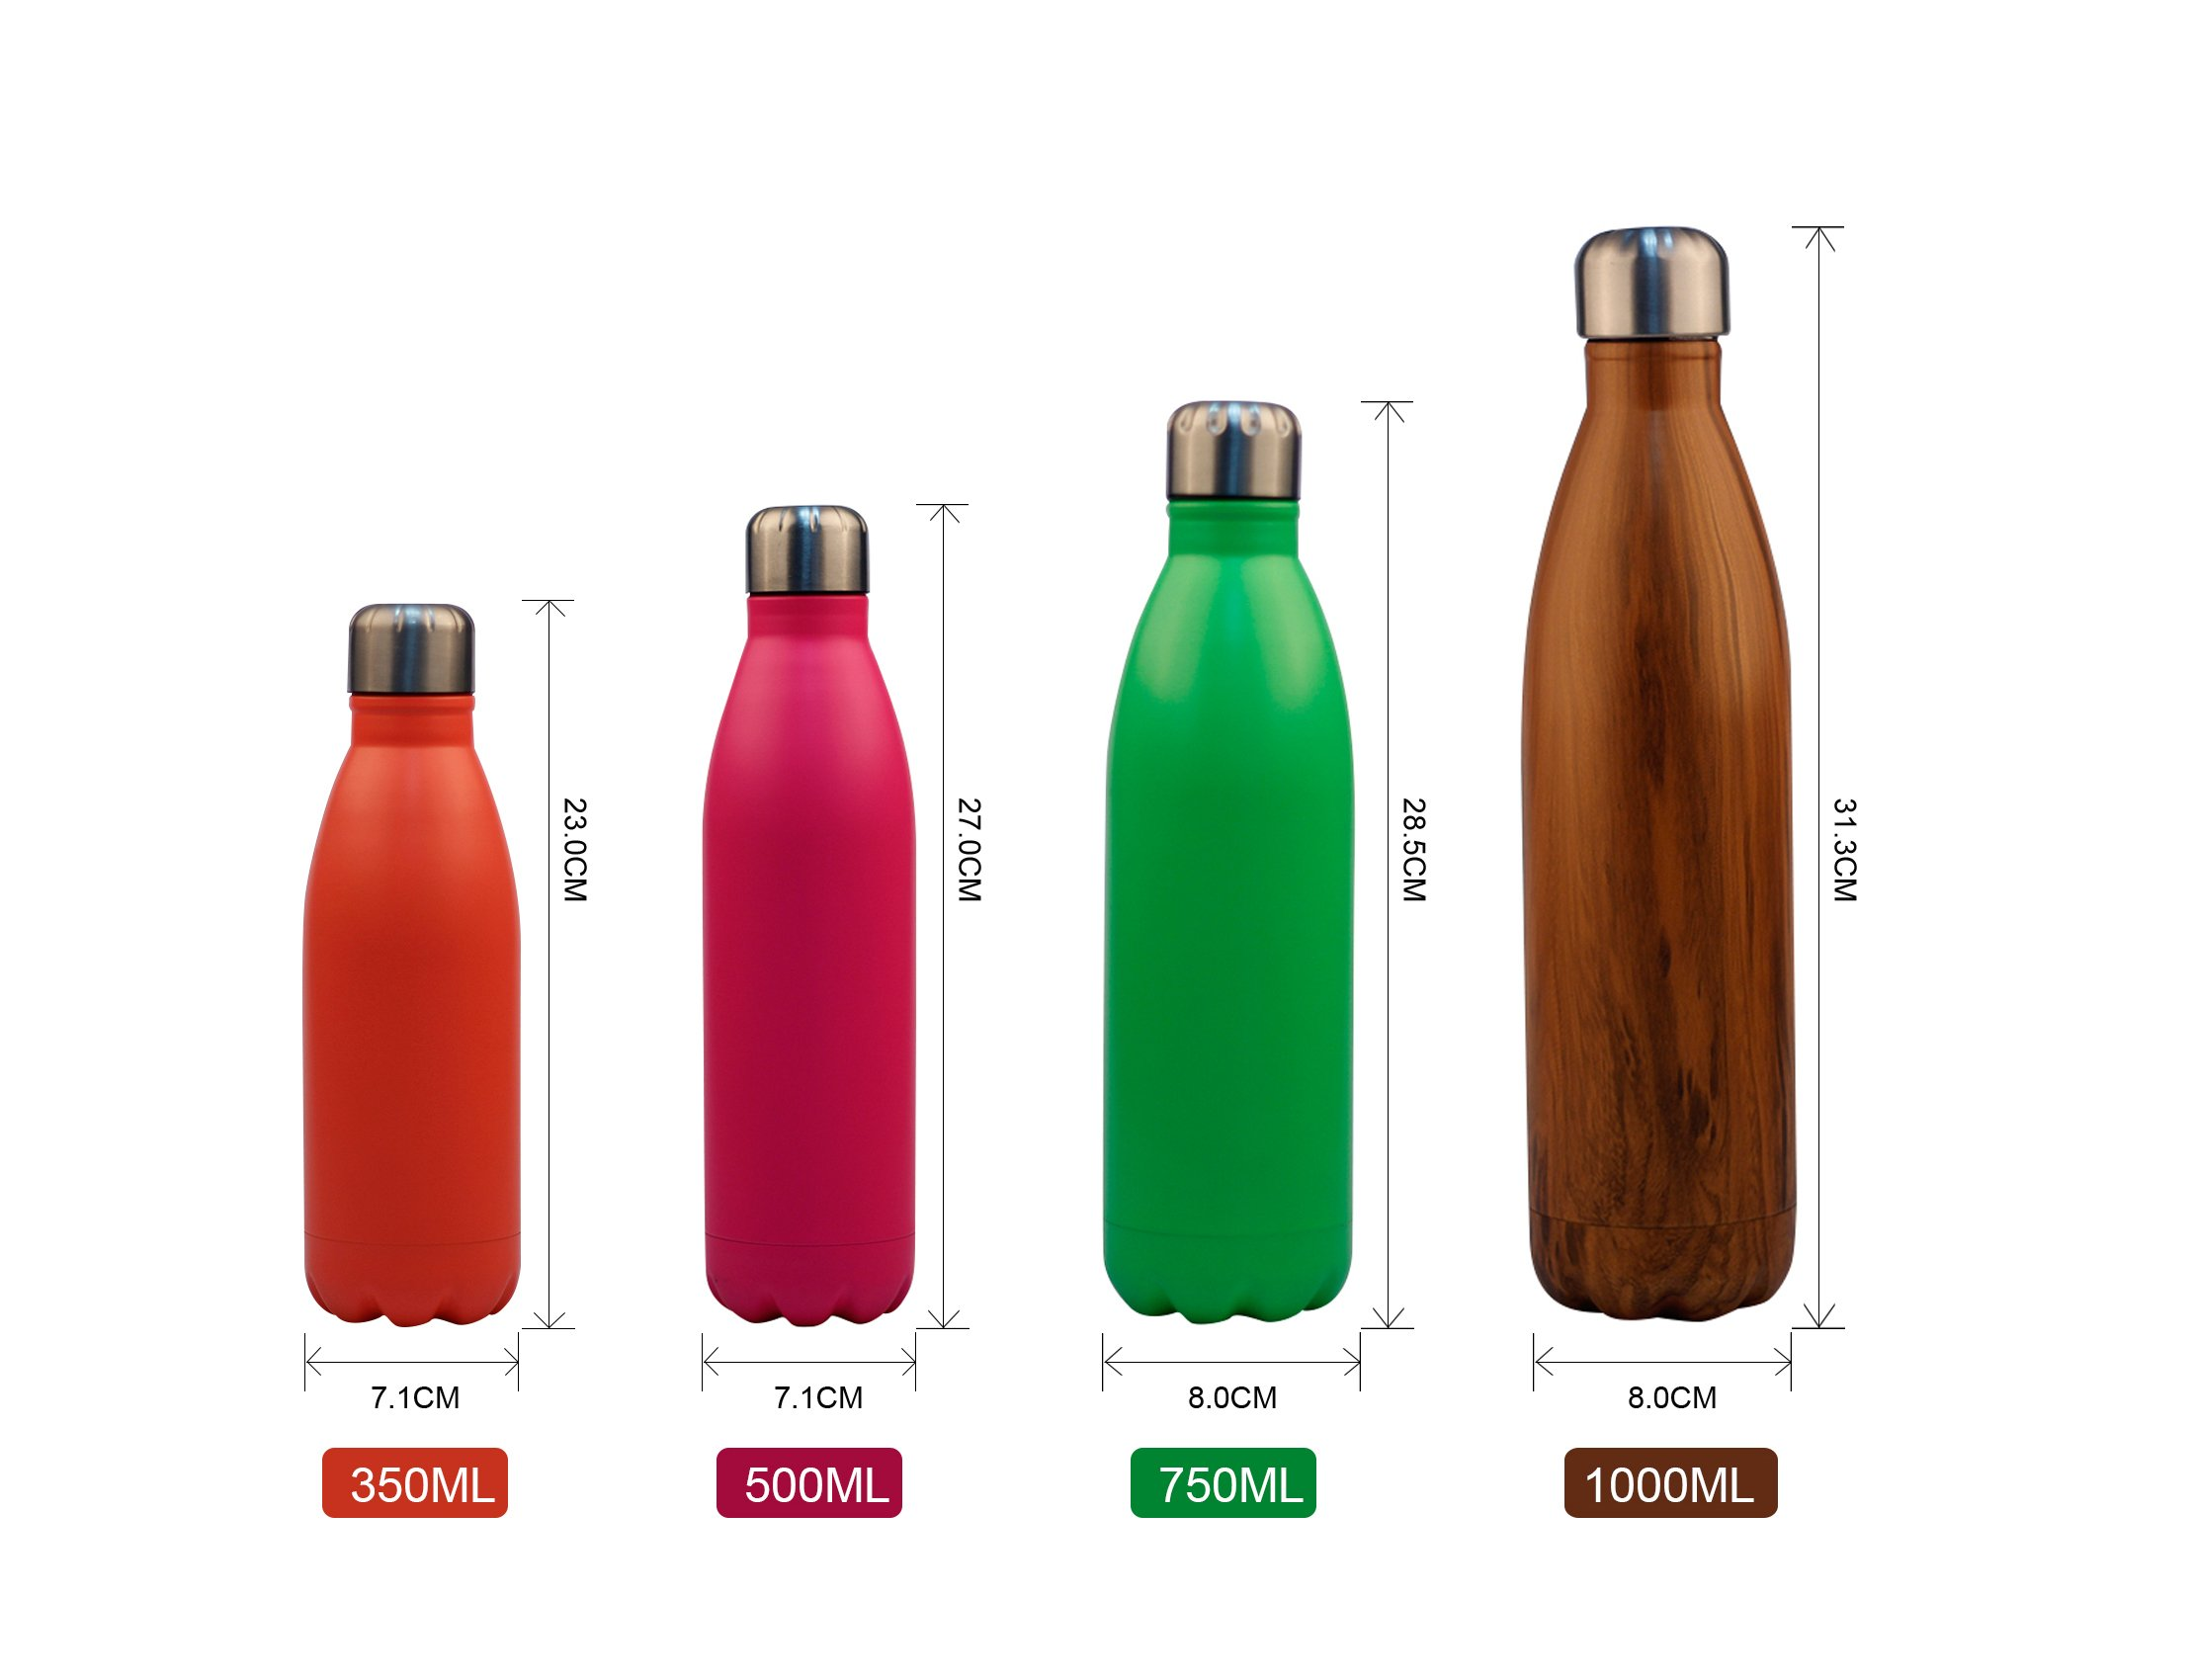 Swell bottle_Accurate_Size